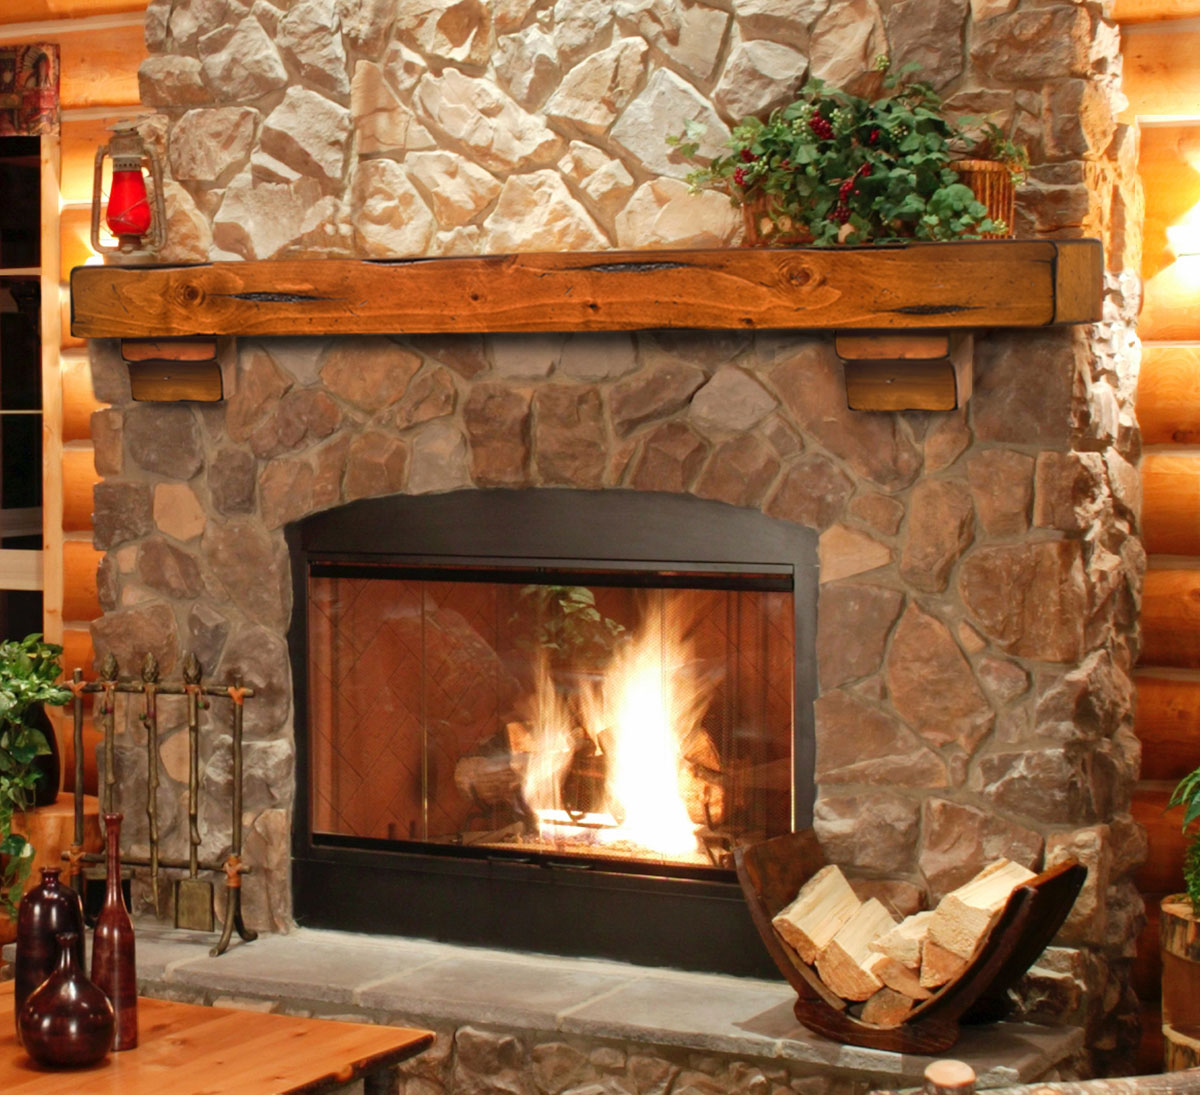 log cabin interior design fireplace design ideas rh bestfireplaceideas com Log Cabin Fireplace Mantels Rustic Log Cabin Fireplaces